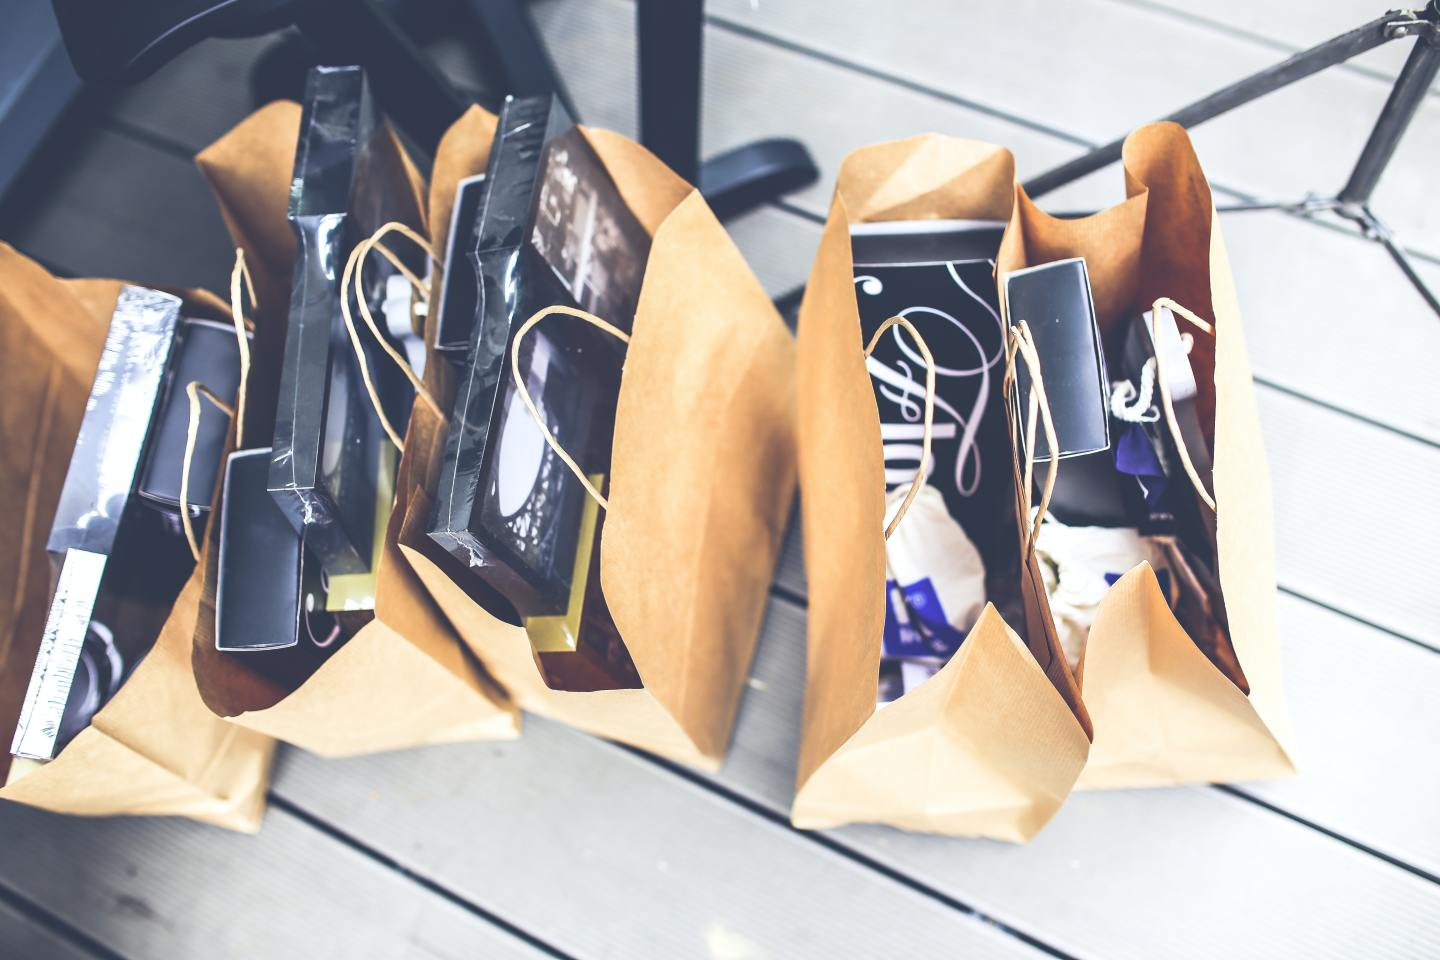 Bags full from a shoppers trip